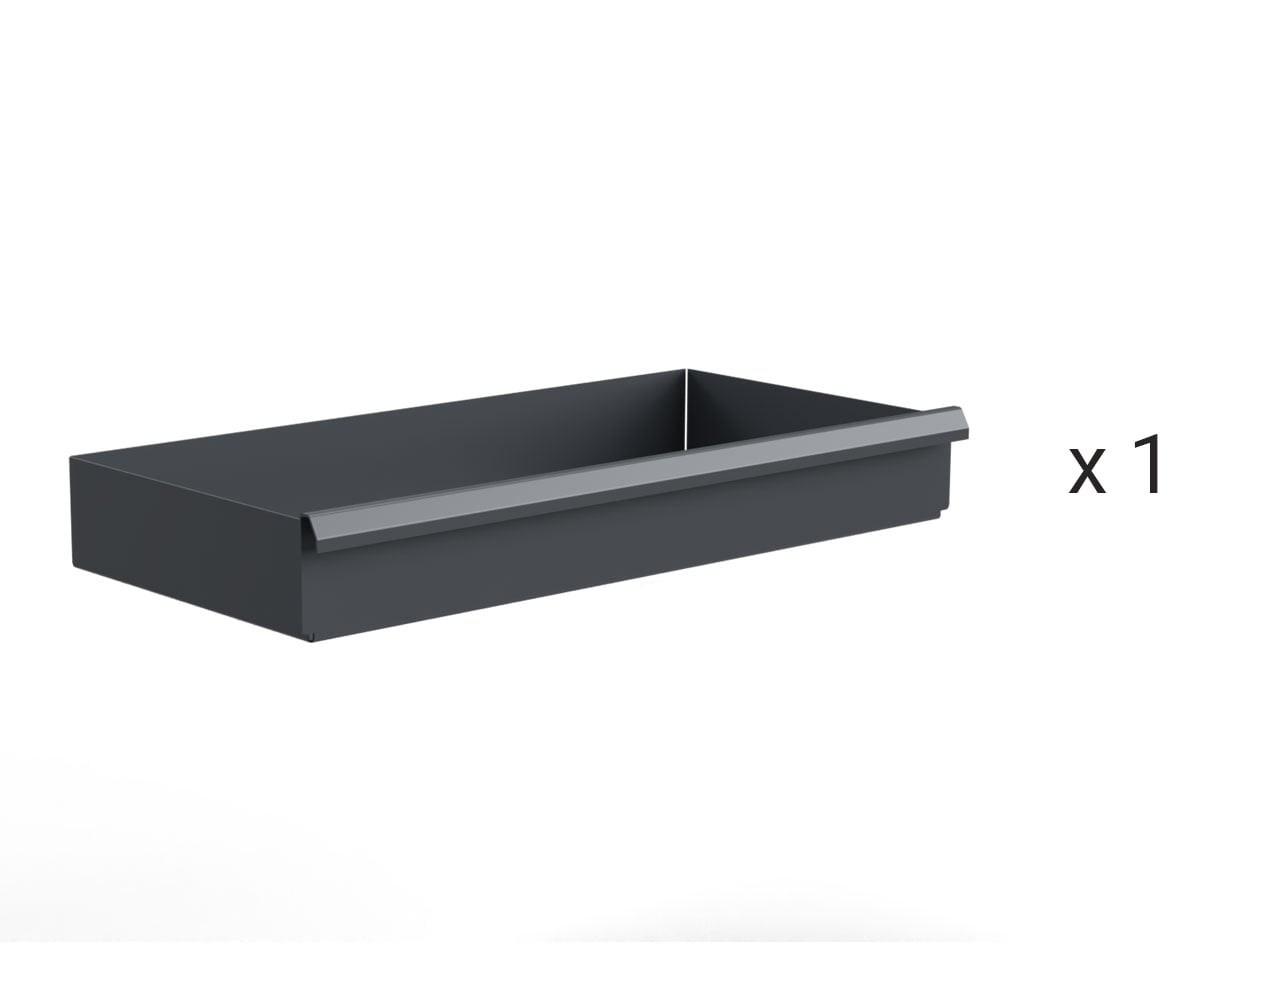 Heavy Duty Drawer Kit with (1) 6 in. Drawer for 60 in. W x 24 in. D Cabinet